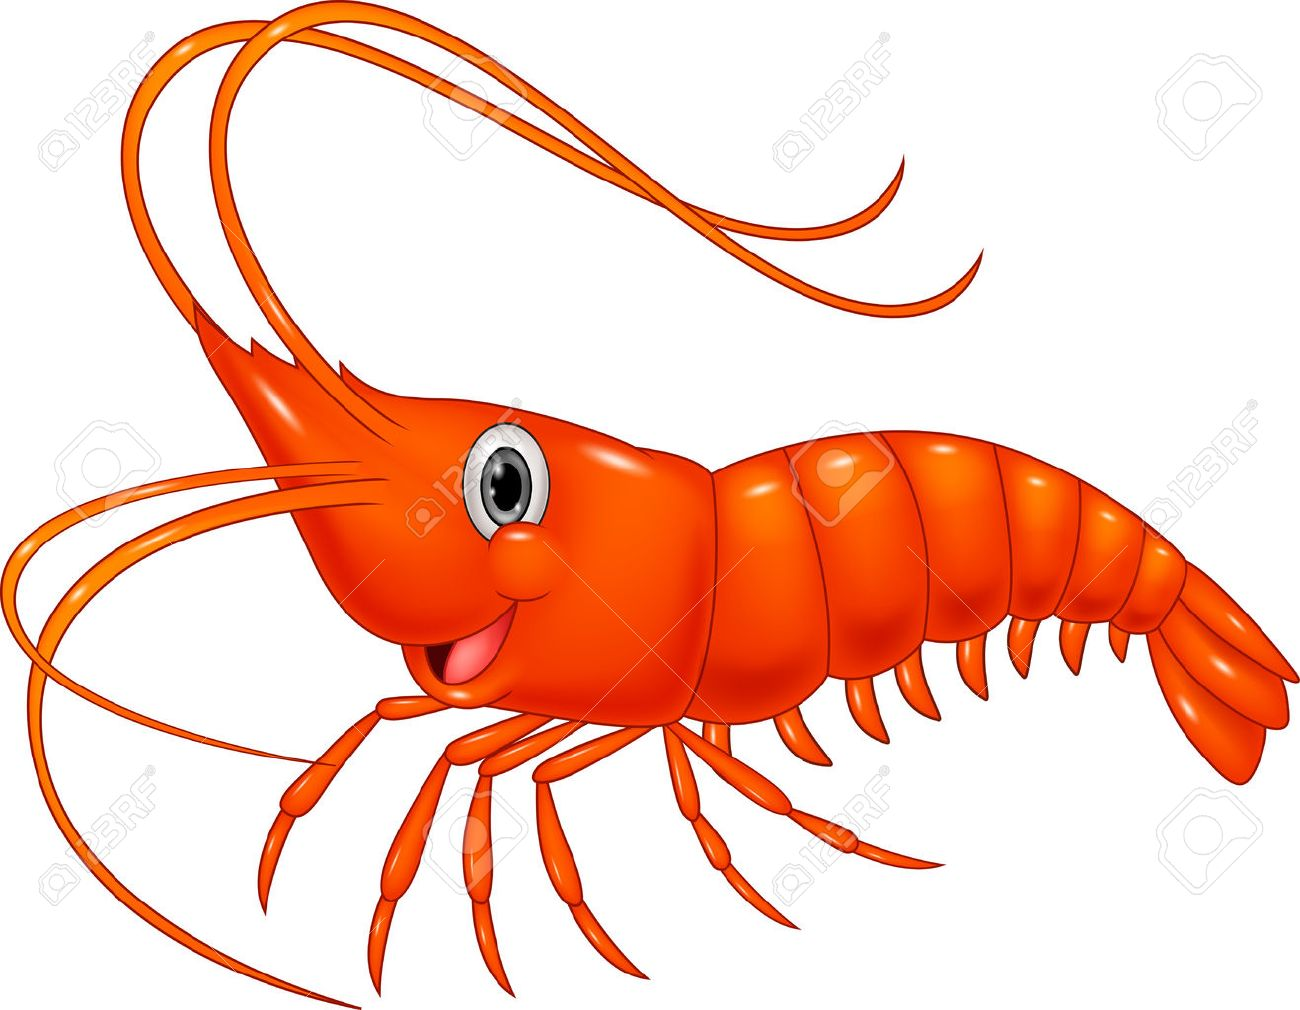 21 699 shrimp stock illustrations cliparts and royalty free shrimp rh 123rf com shrimp clipart png shrimp clipart png